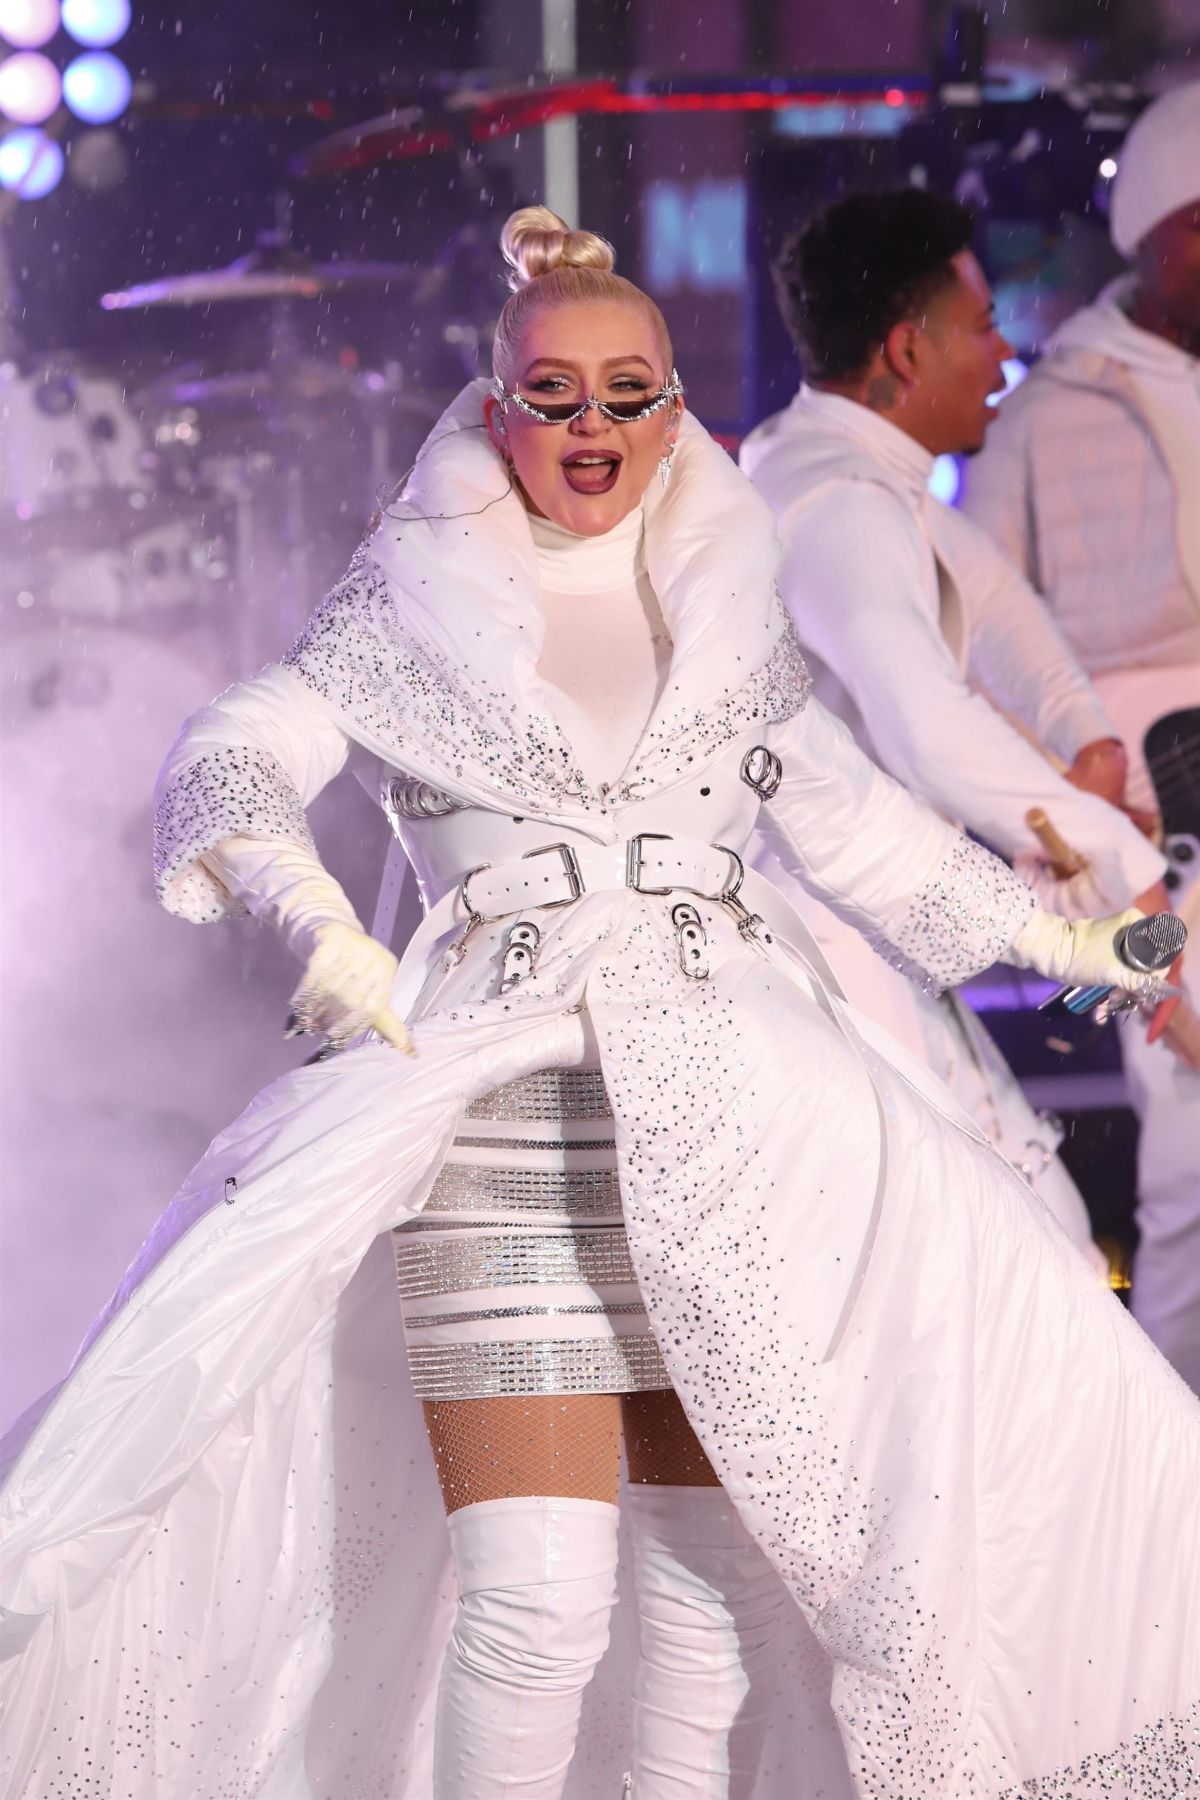 christina-aguilera-performs-on-nye-in-ti